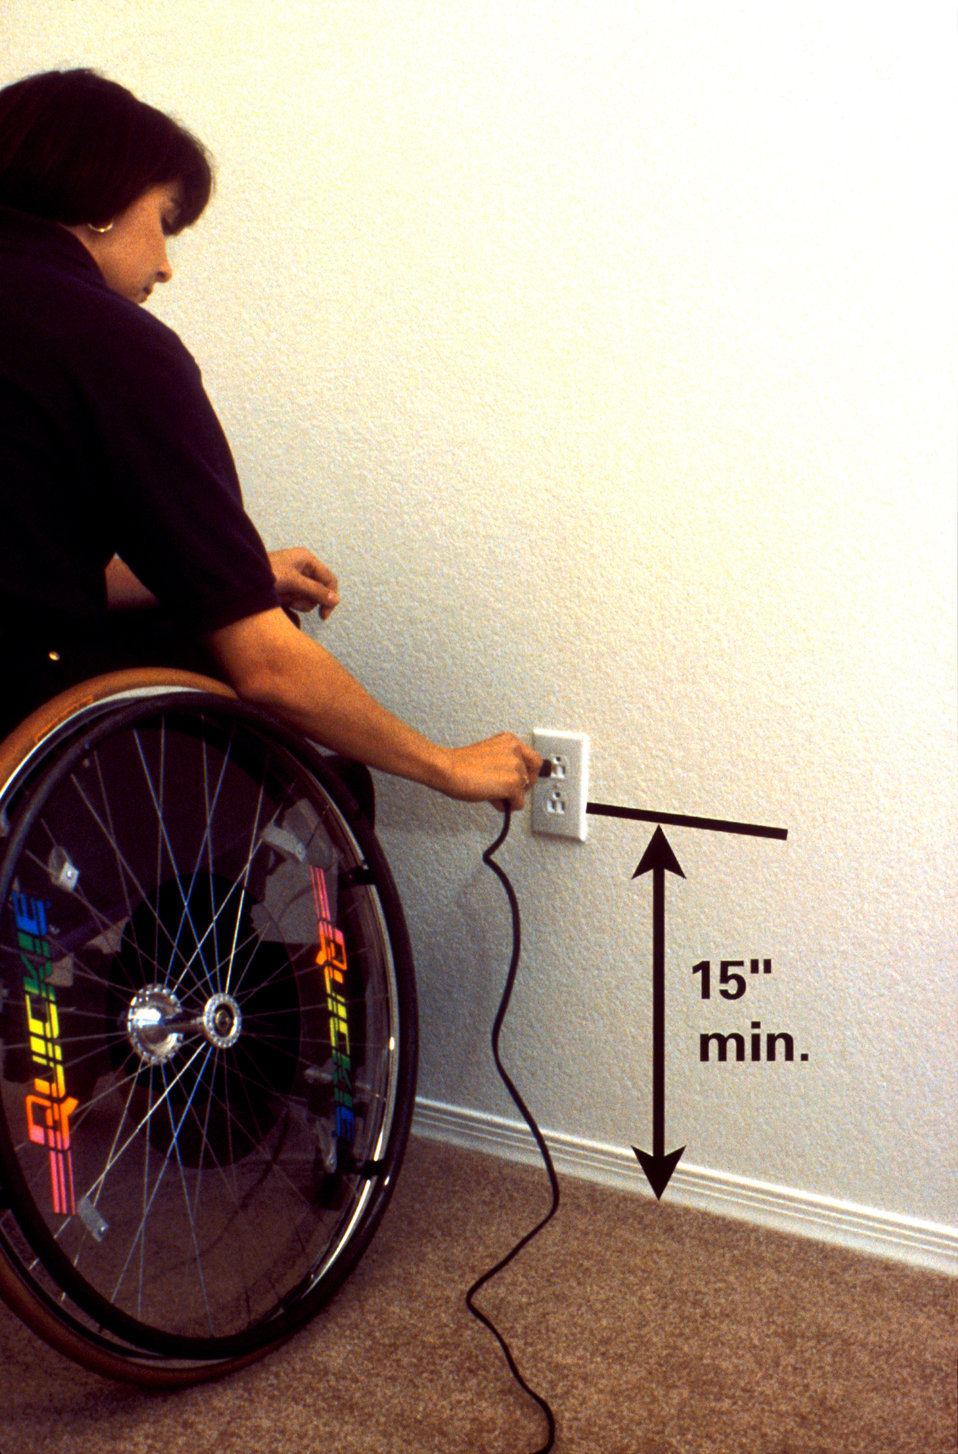 This 1997 image showed that by mounting an electrical outlet no lower than fifteen inches above floor level, a wheelchair-seated individual